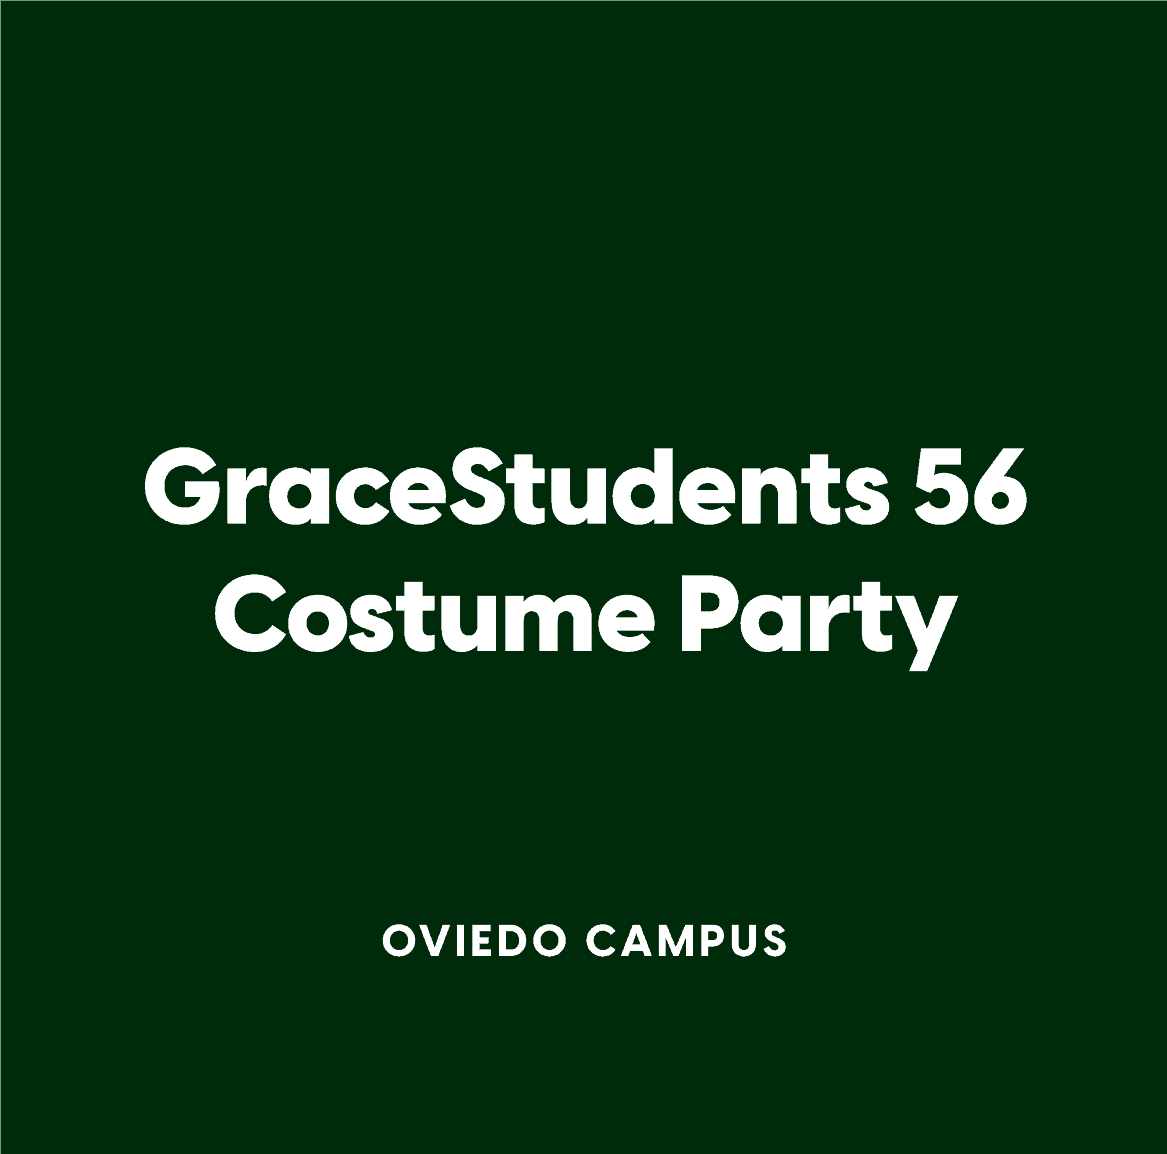 Oviedo GraceStudents 56 Costume Party